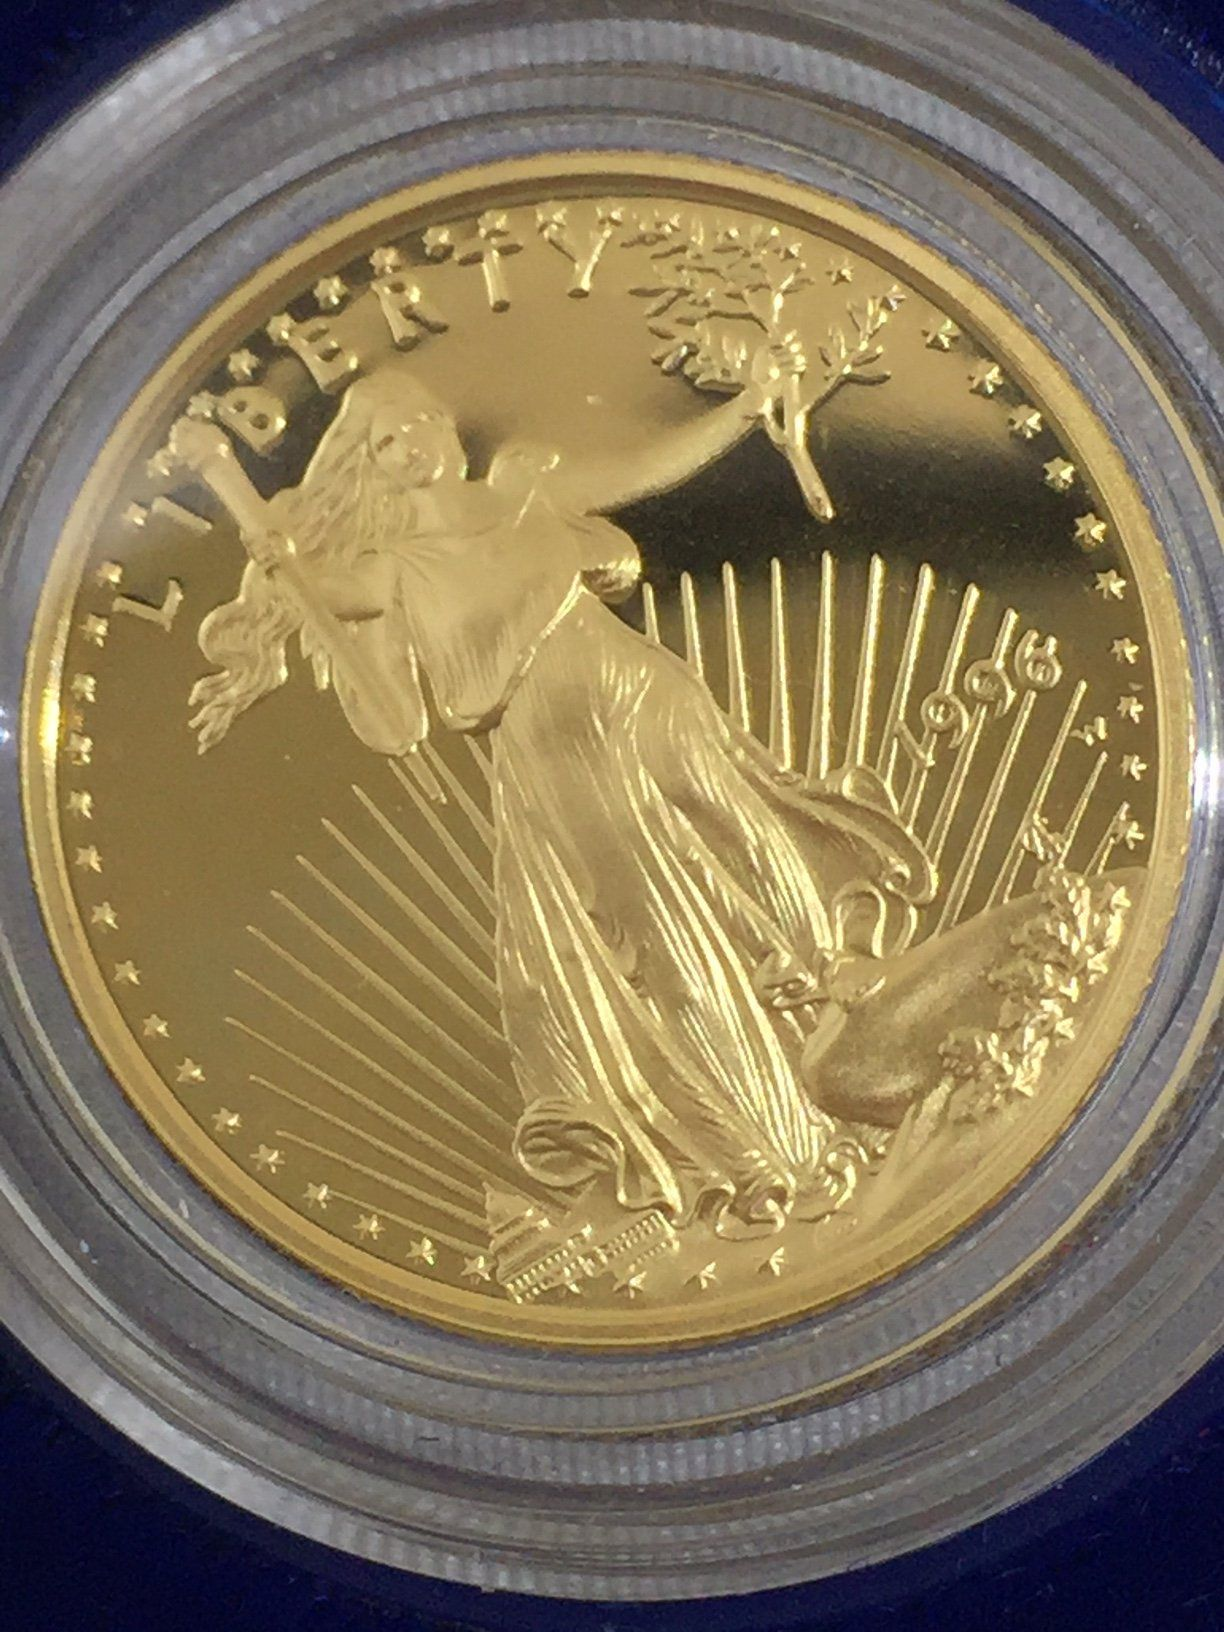 1996 One Quarter Ounce Ten Dollar Gold Coin Proof Goldinvesting Gold Bullion Bars Gold Coins Coins